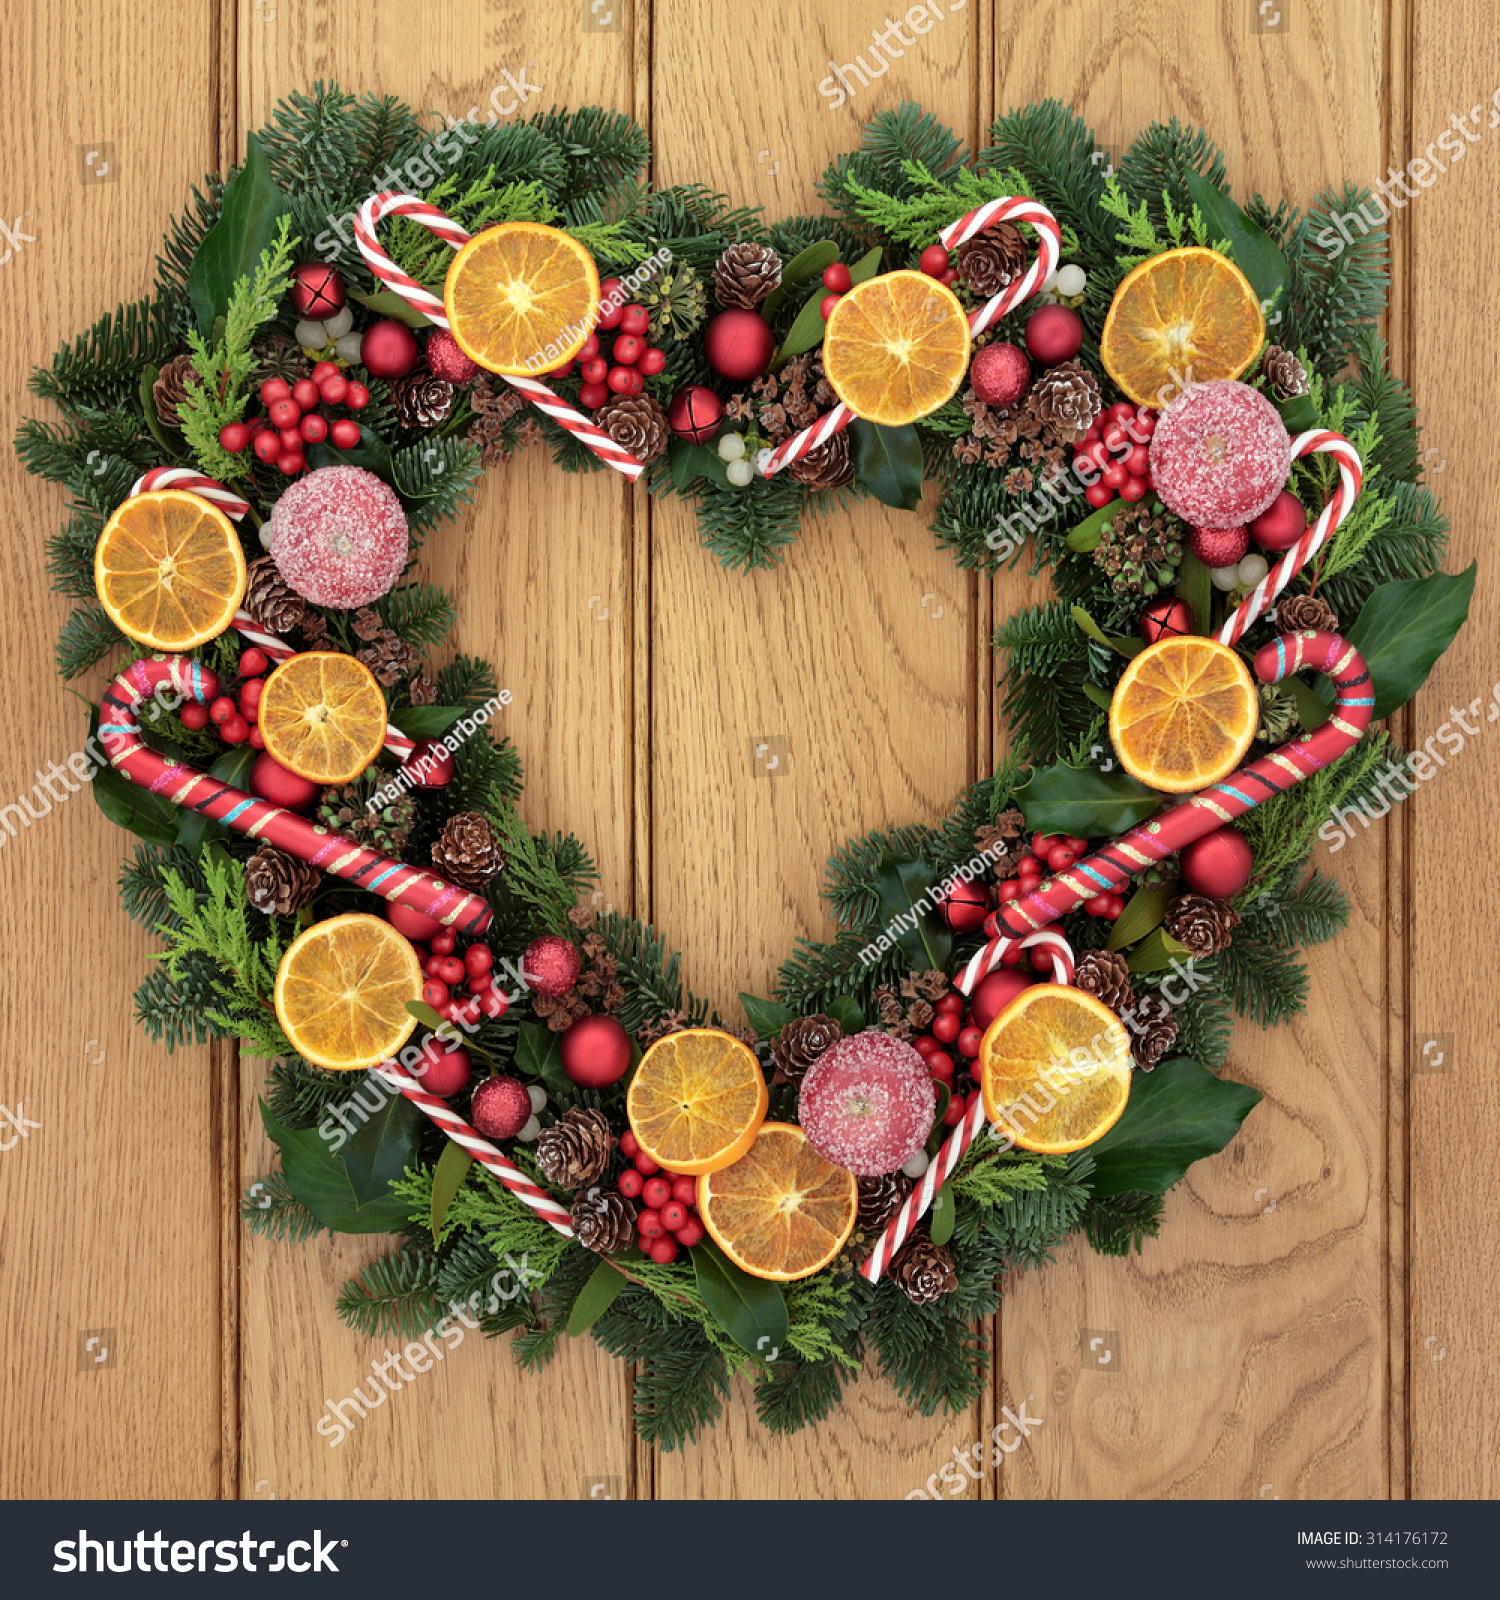 Fruit over the door christmas decoration - Christmas Heart Shaped Wreath With Dried Fruit Candy Canes Bauble Decorations Holly